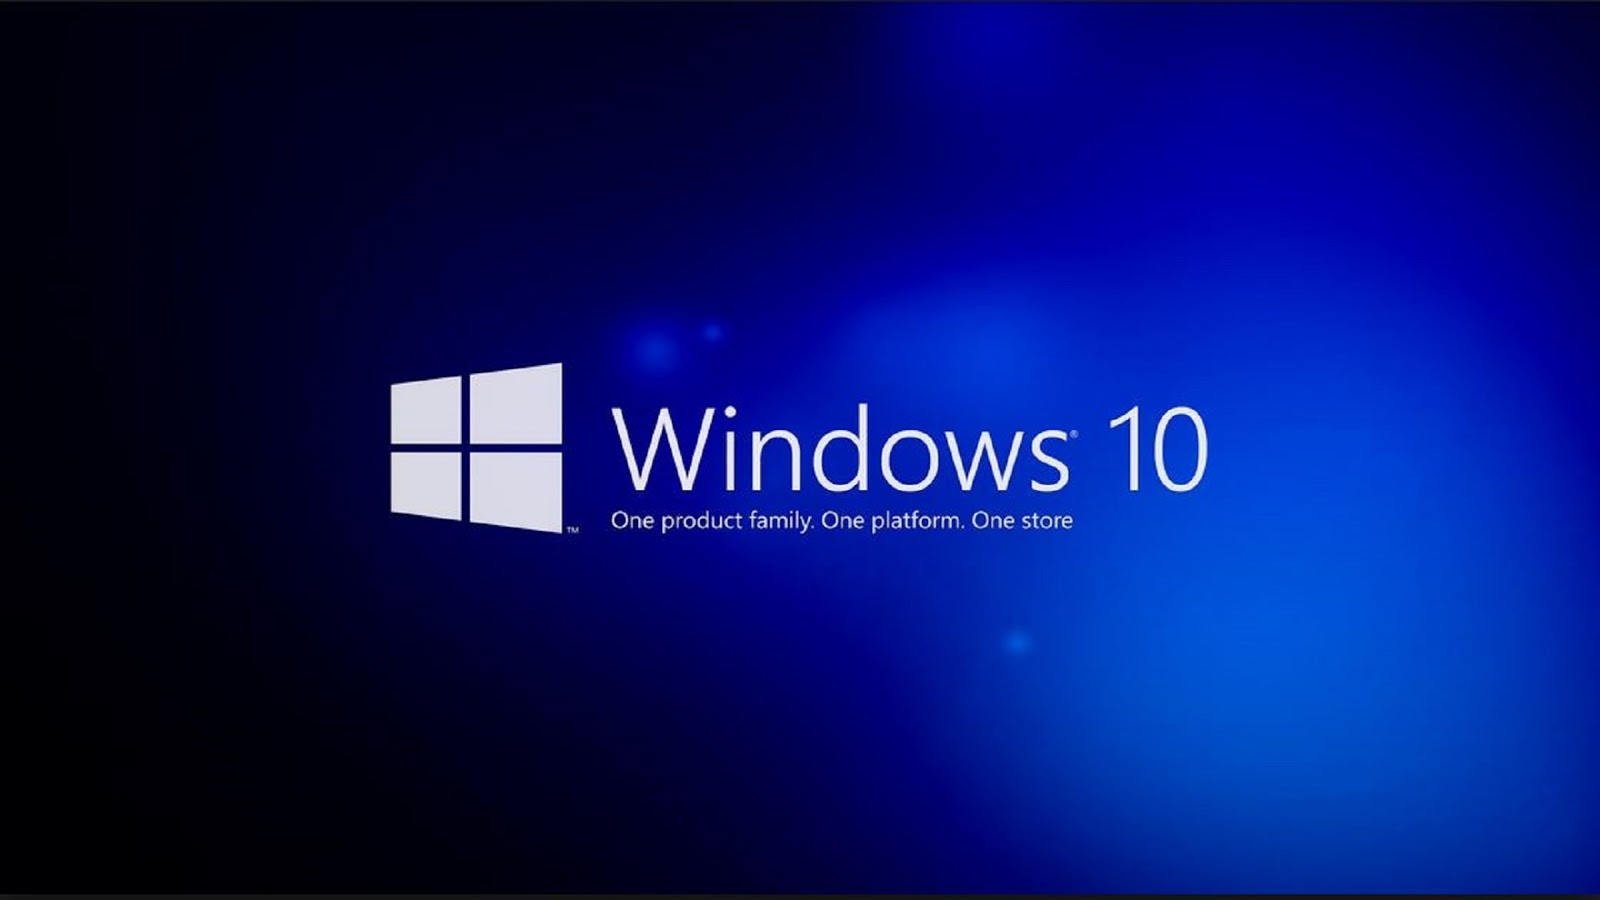 Windows 10 Top 10 Theme 2016 Deskthemepack Windows 10 Theme